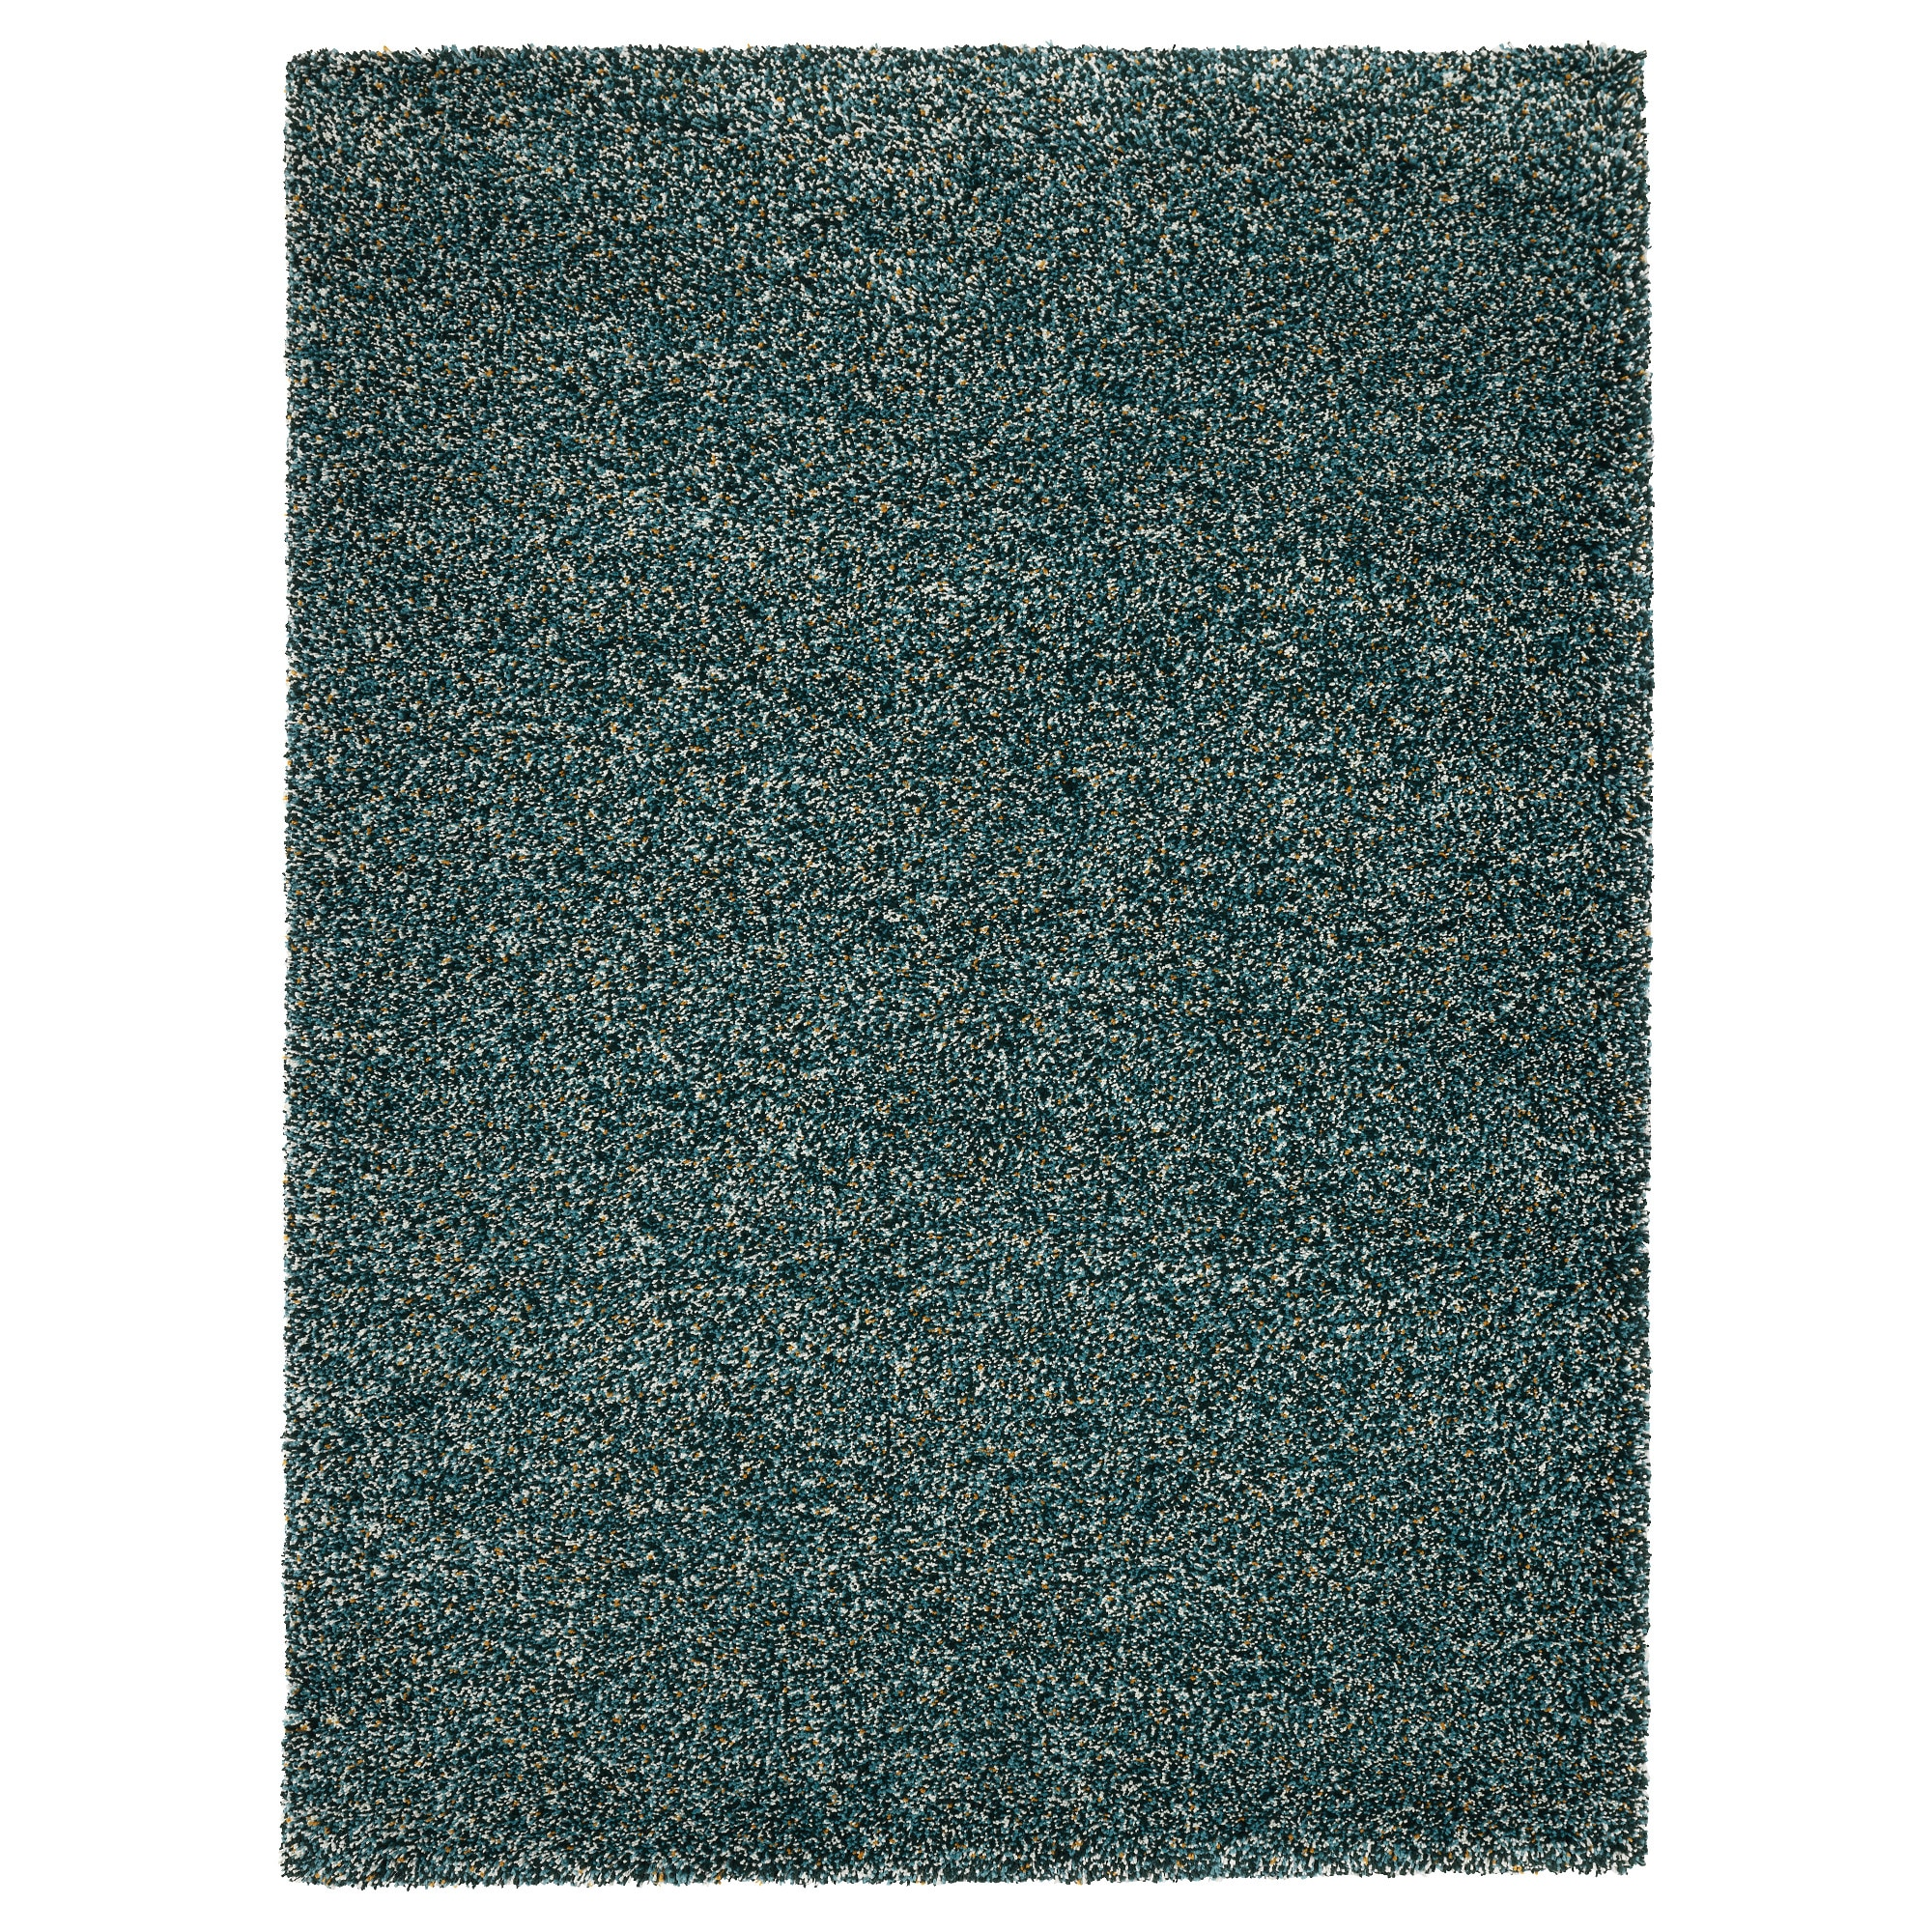 Vindum Rug High Pile Blue Green Length 8 10